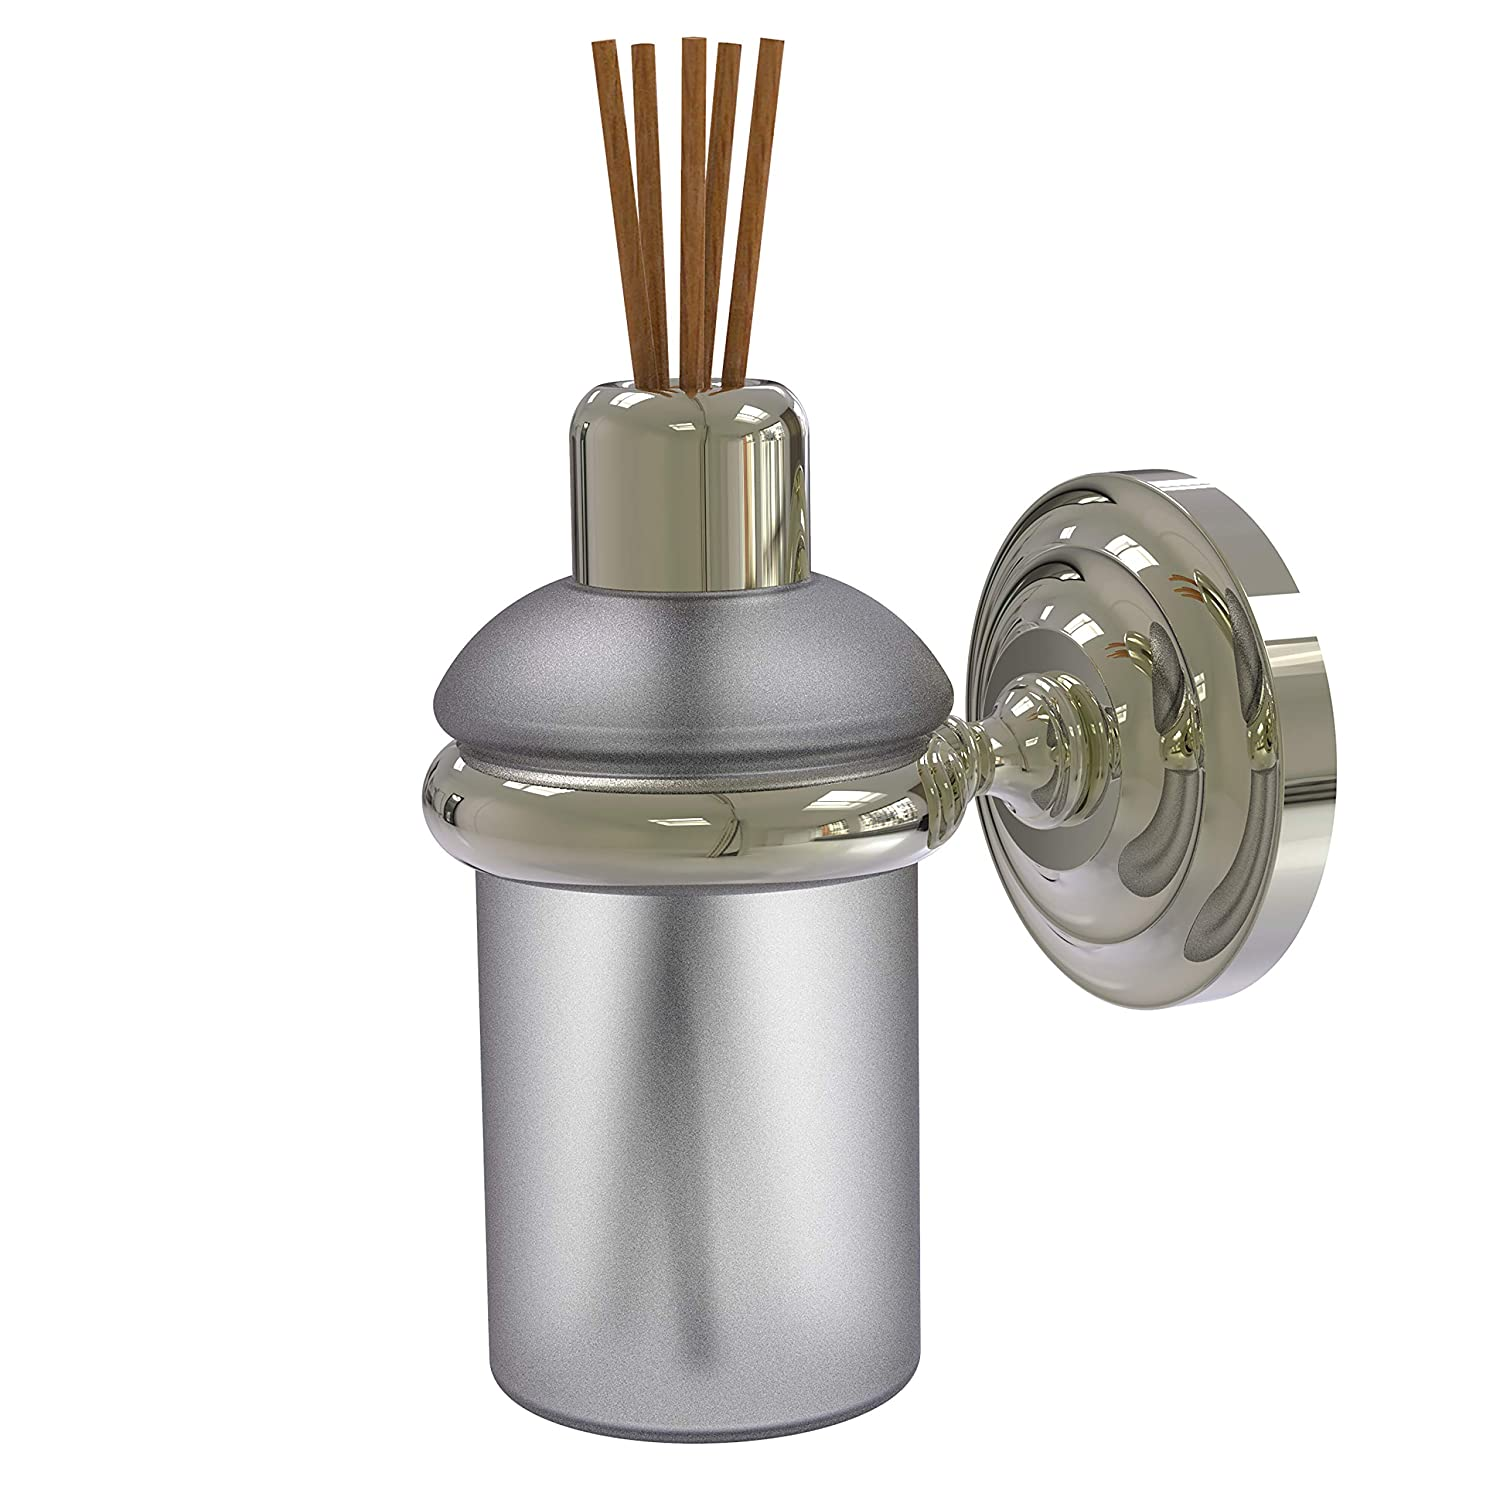 Allied Brass Que Wall Mounted Reed Fragrance Oil Diffuser, 5 Ounce Capacity, Polished Nickel